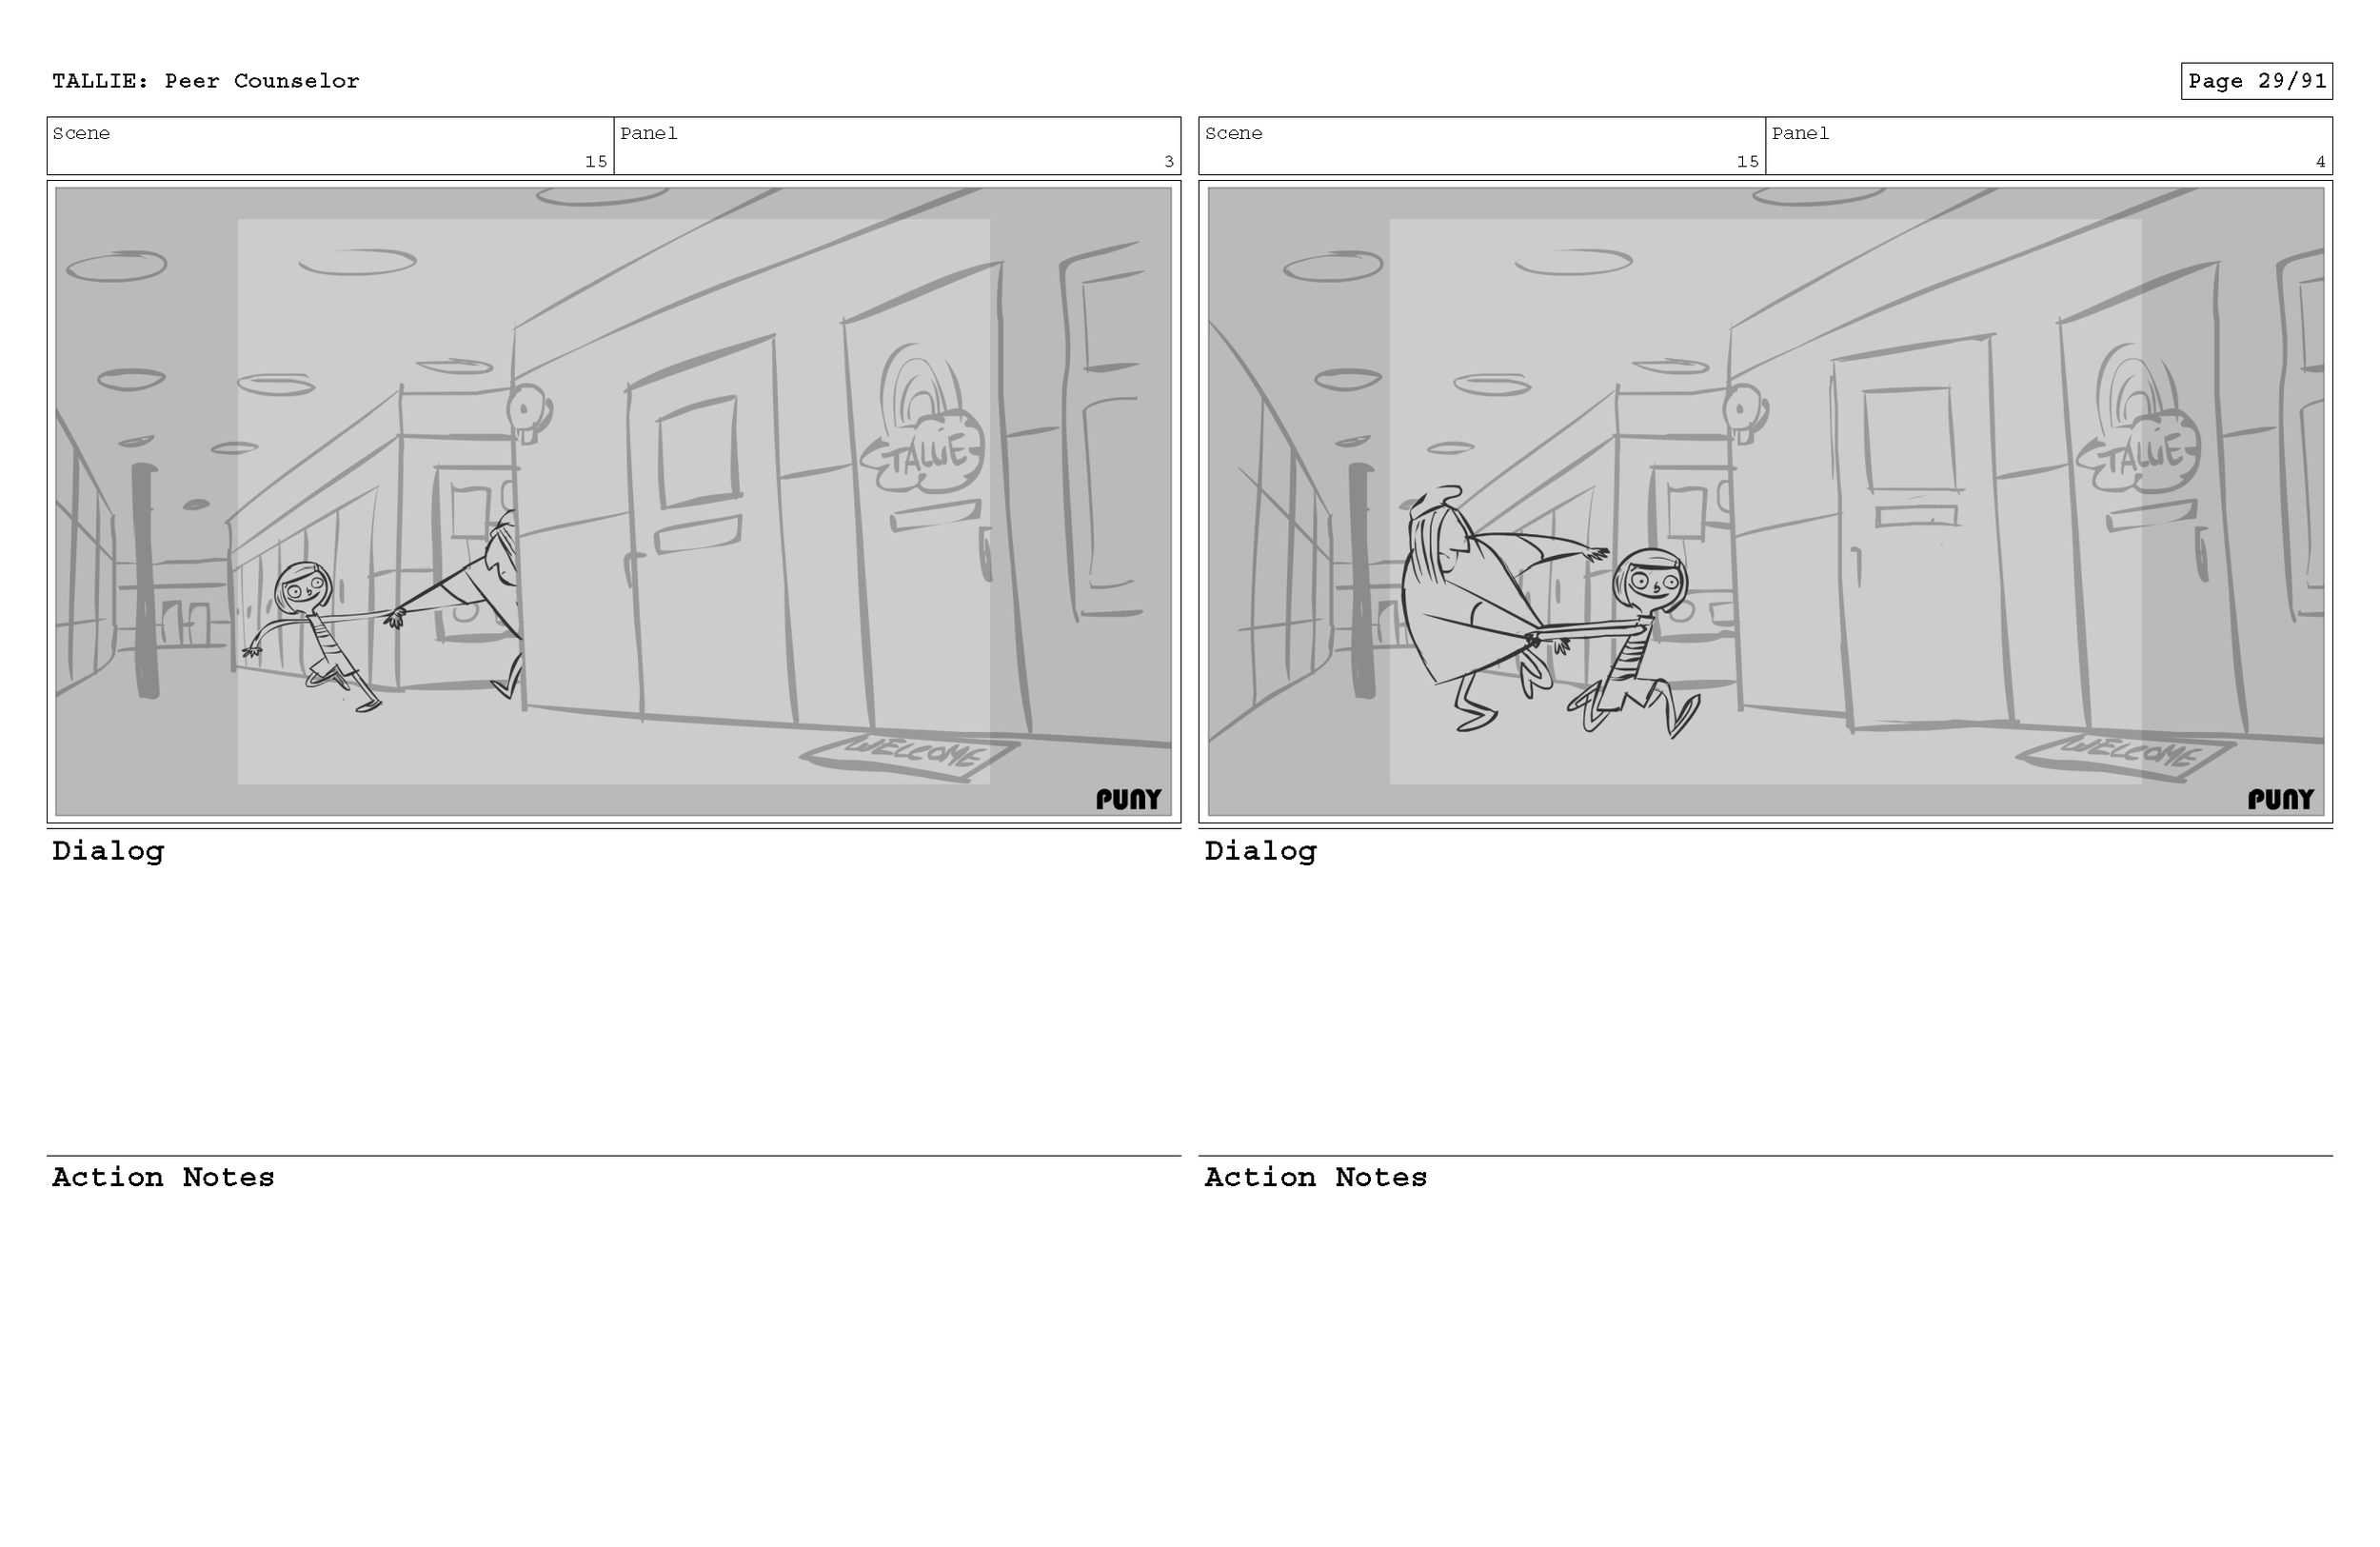 MikeOwens_STORYBOARDS_TallieSilverman_Page_30.png